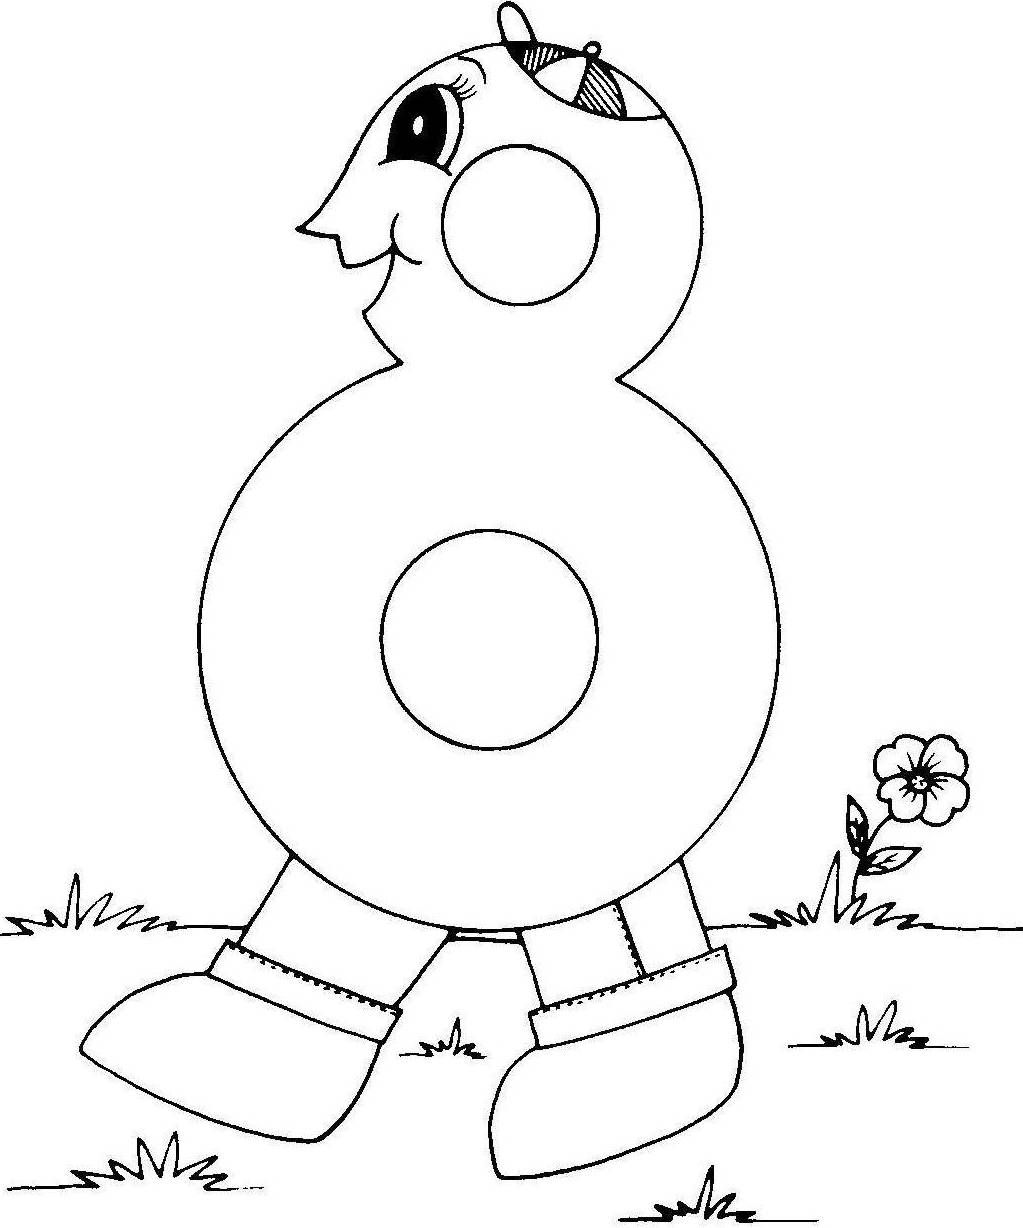 Free Daedalus And Icarus Coloring Pages